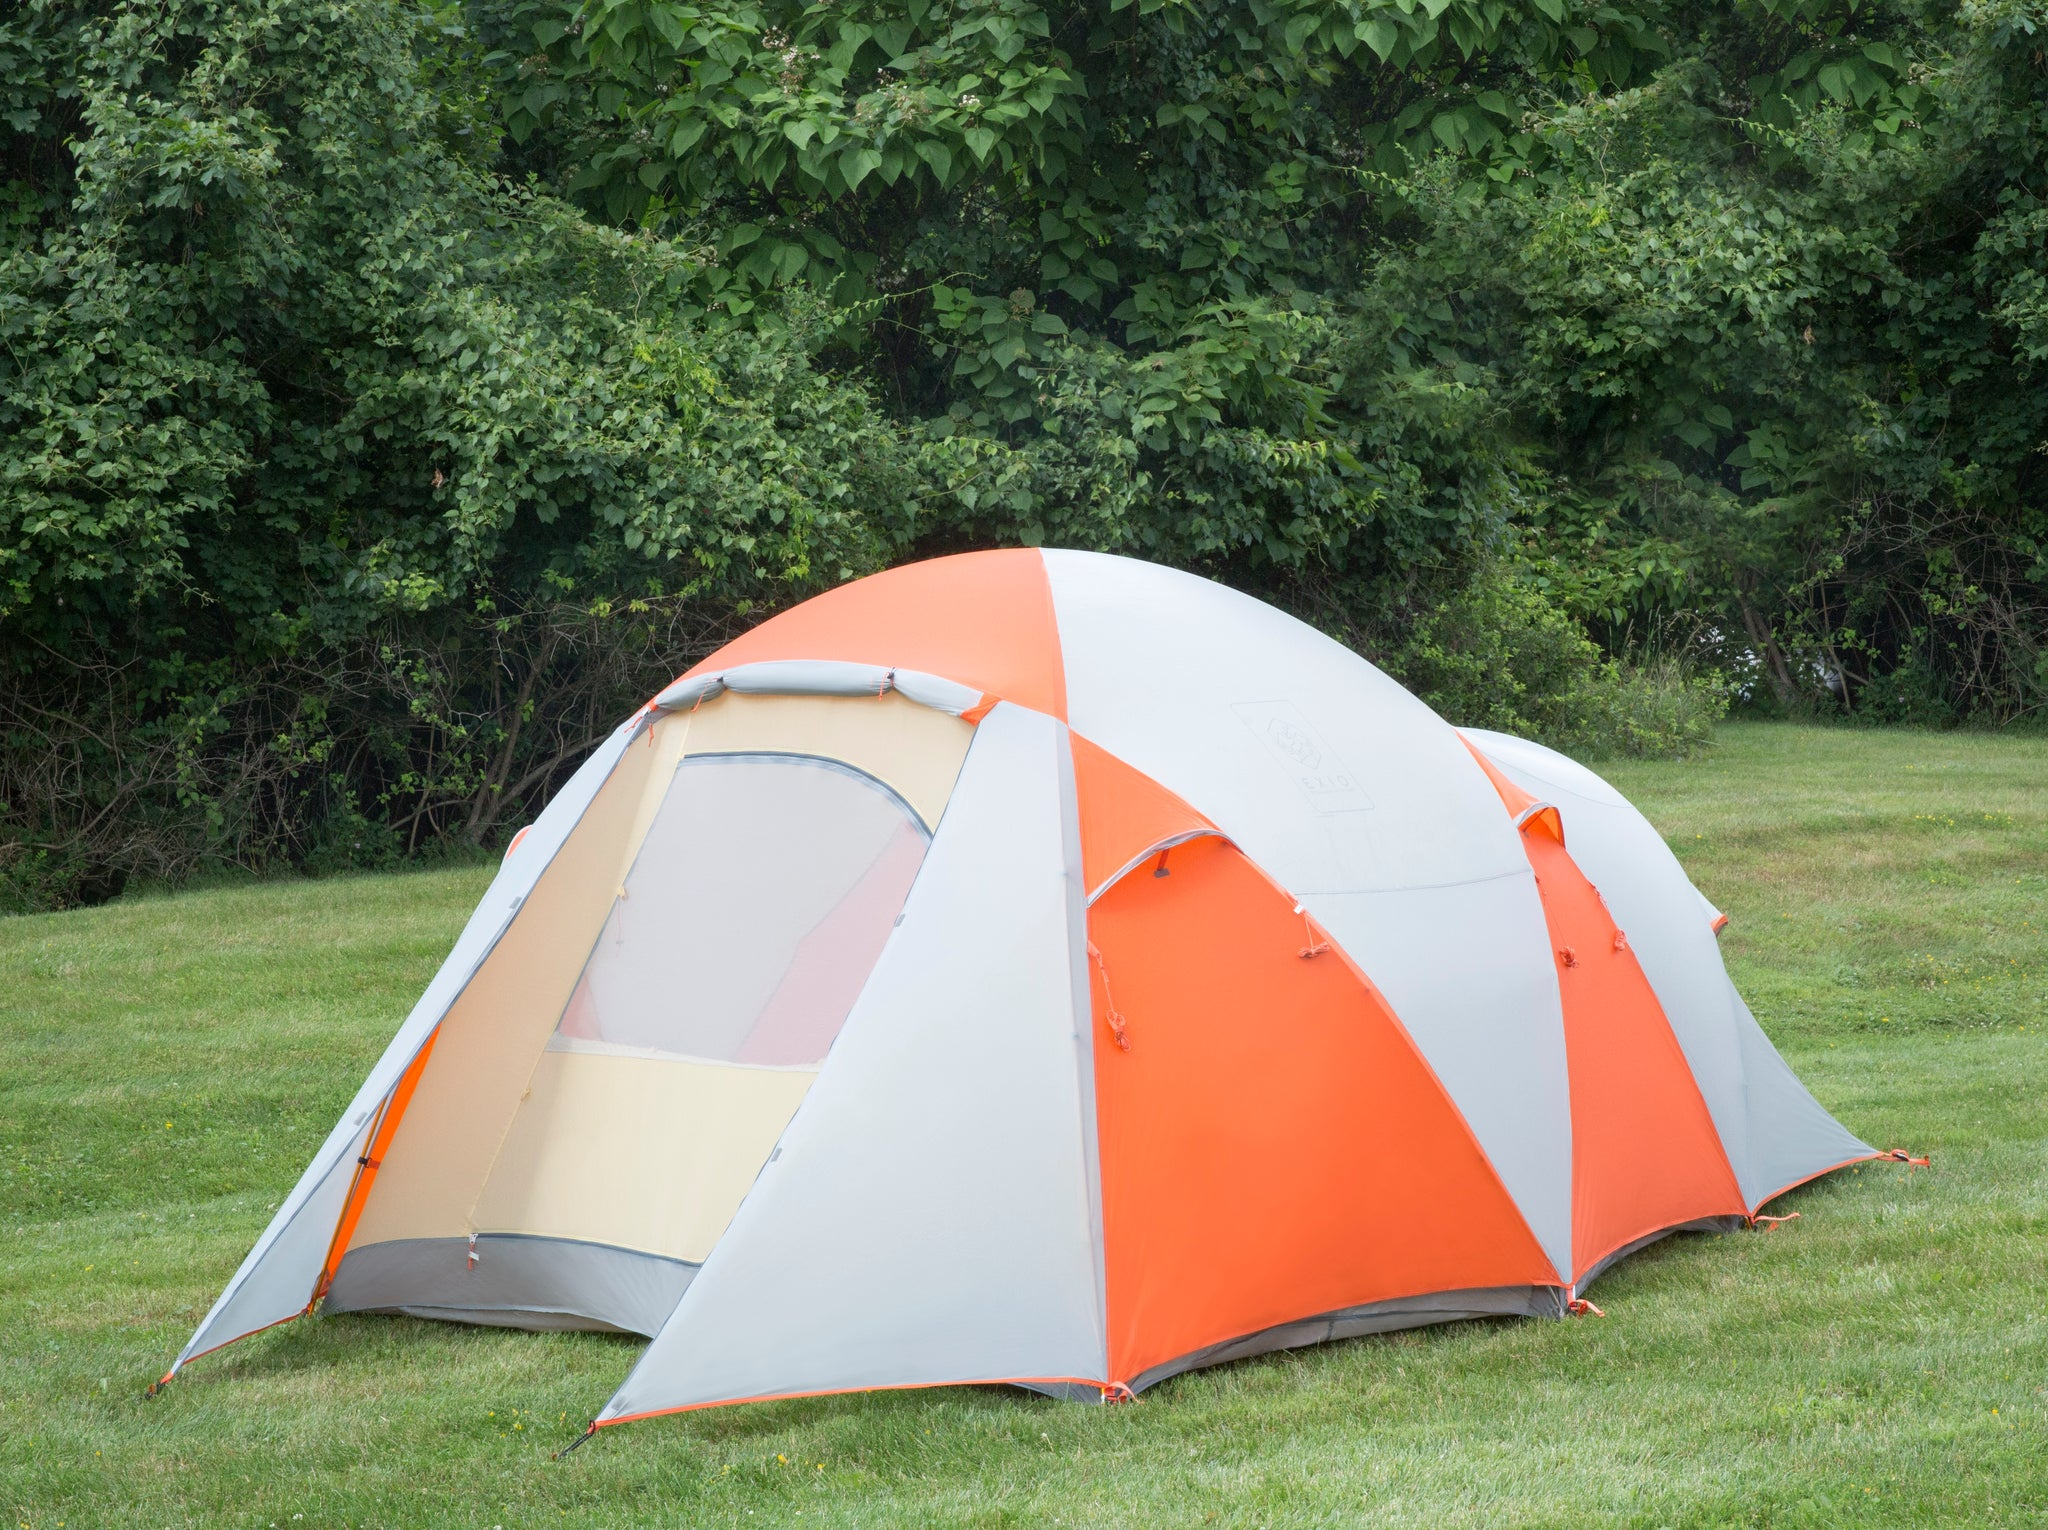 ... 8-Person Compact Backcountry Tent & 8-Person Compact Backcountry Tent u2013 EXIO Gear